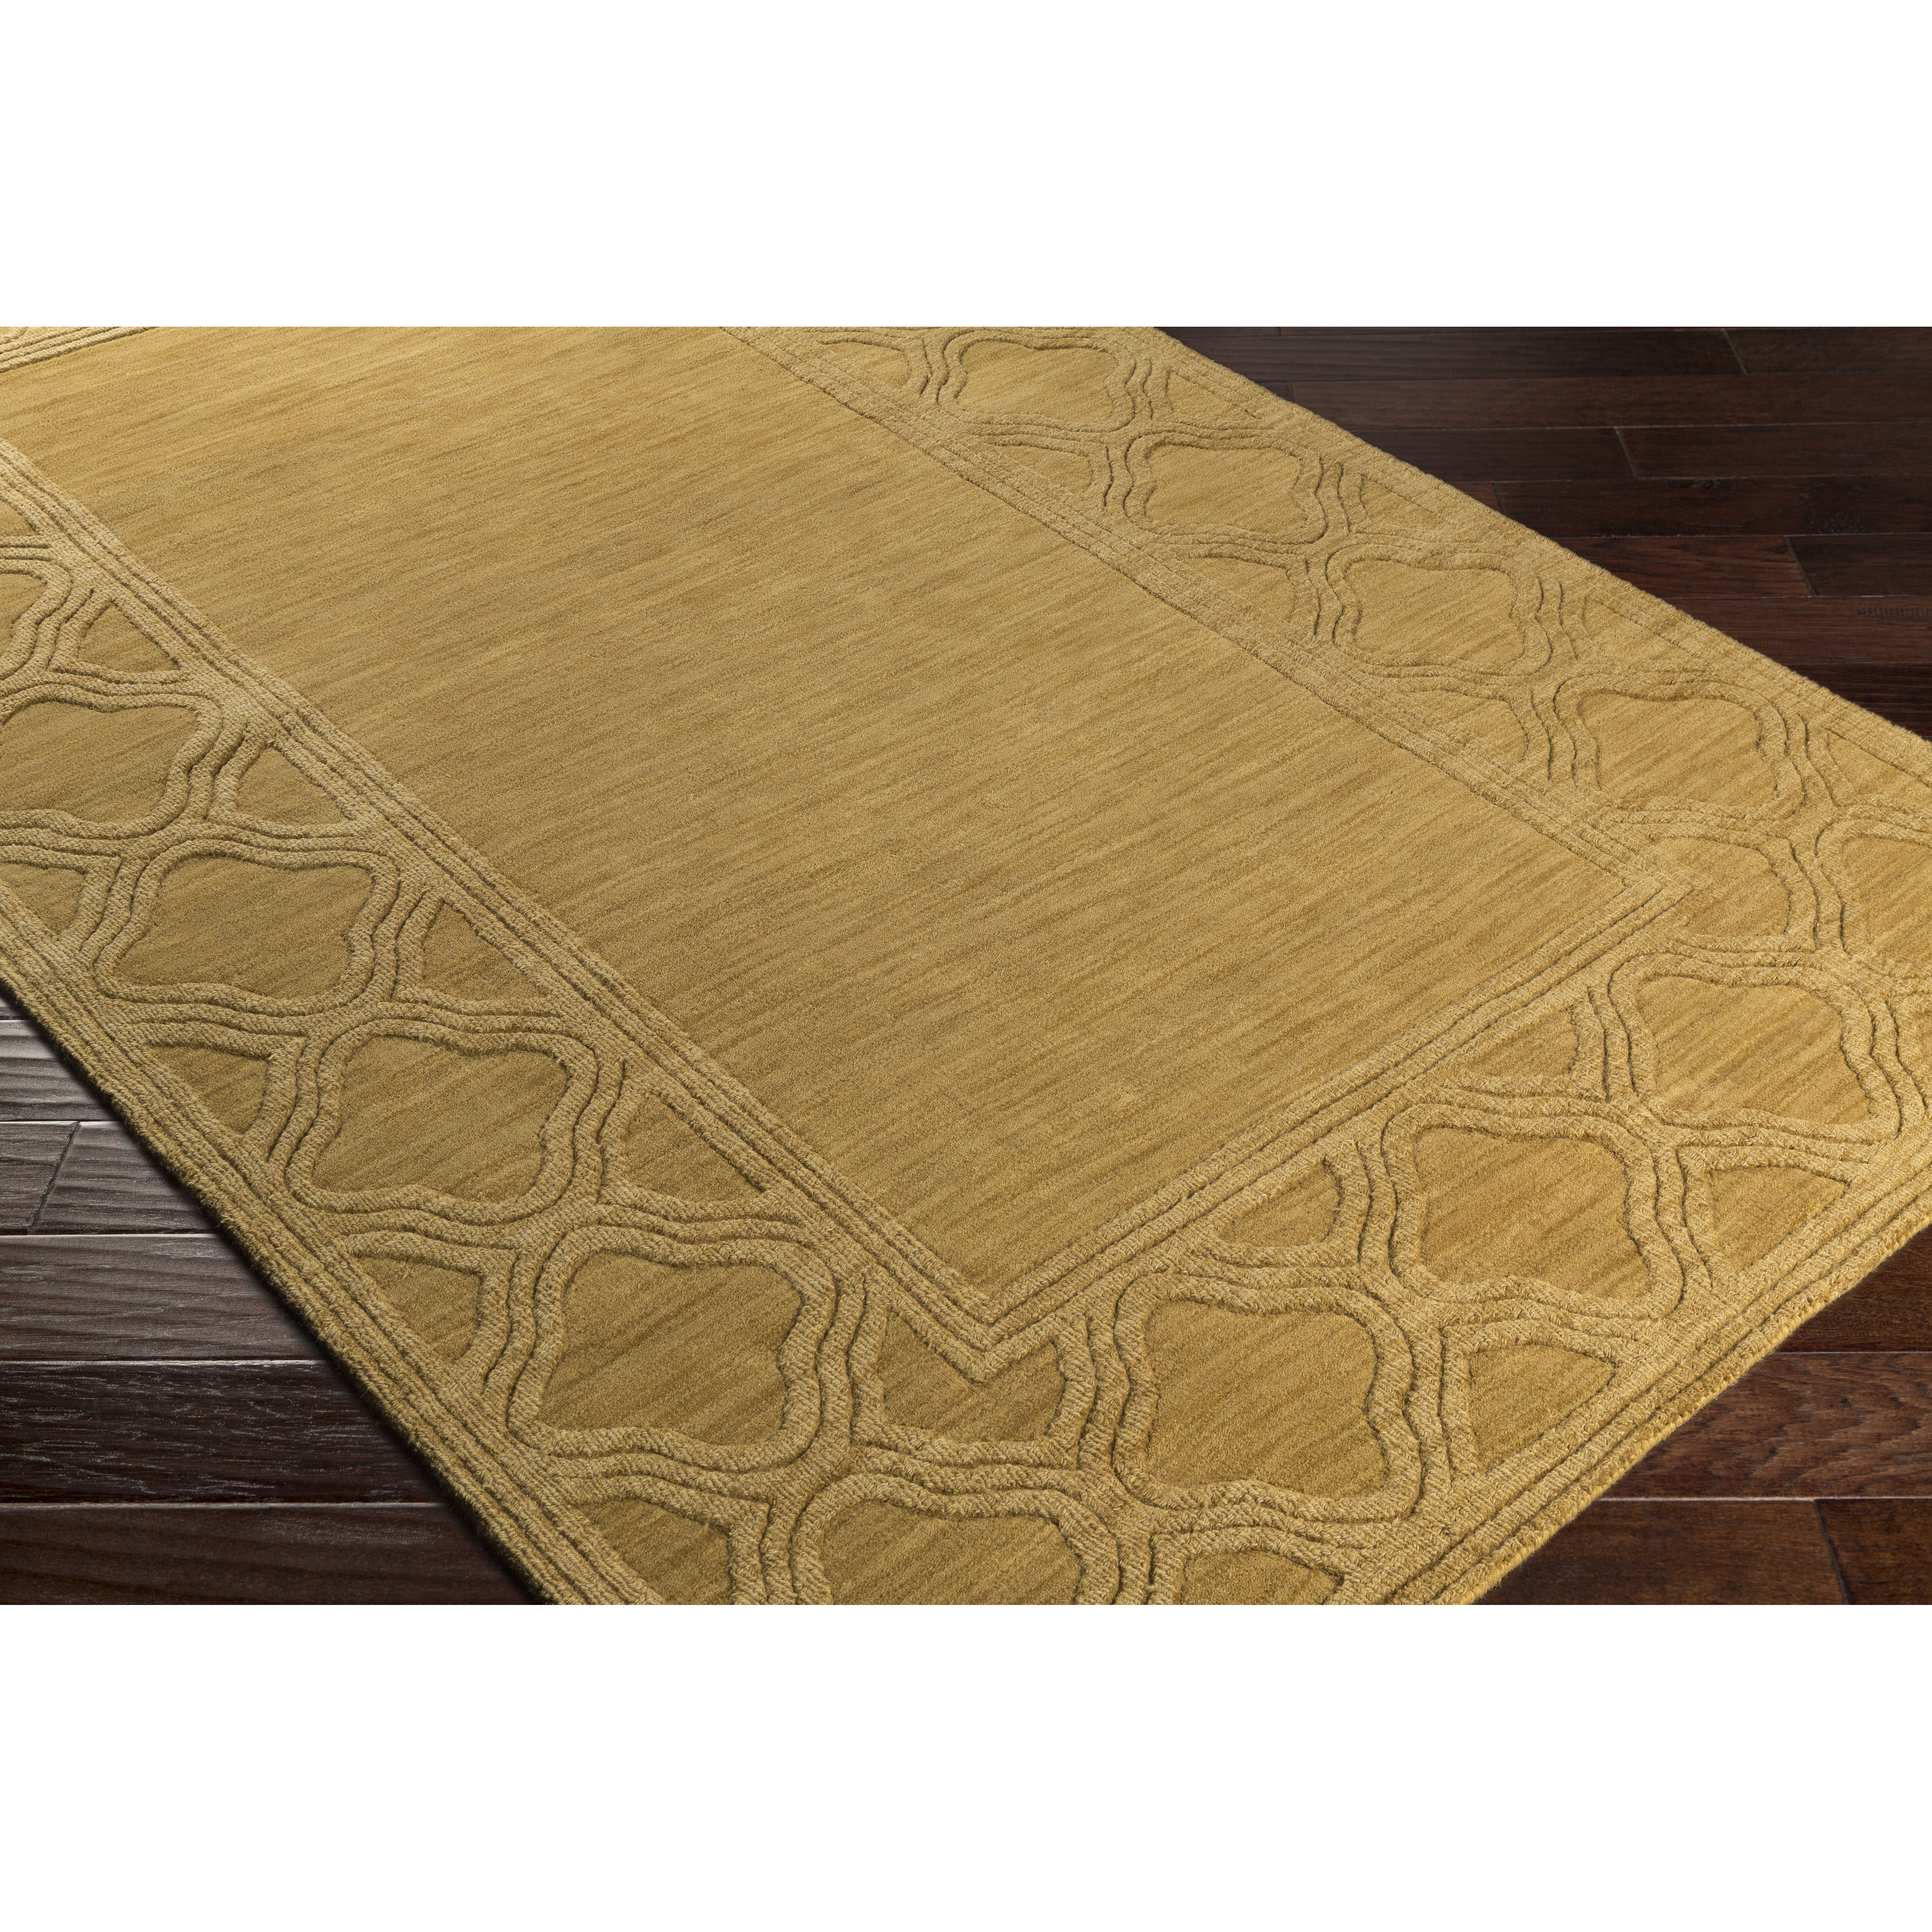 Amazing Charlton Home Essex Mustard Yellow Area Rug mustard yellow area rug